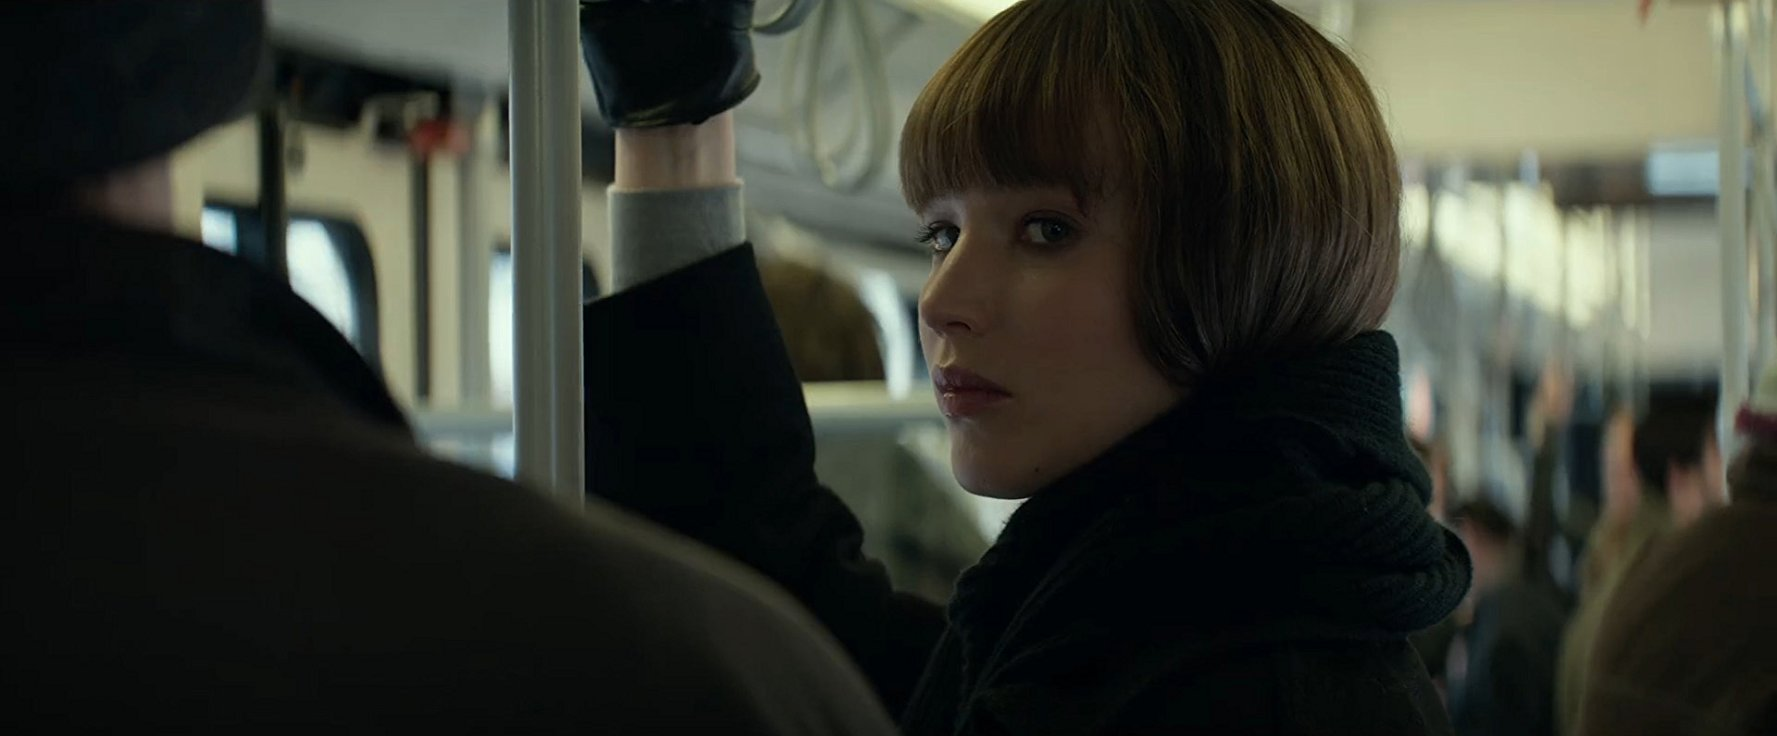 #JenniferLawrence enters the spy game in the first full trailer for @RedSparrowMovie: https://t.co/3O2Xn258Vw https://t.co/5Oon5DKZxs